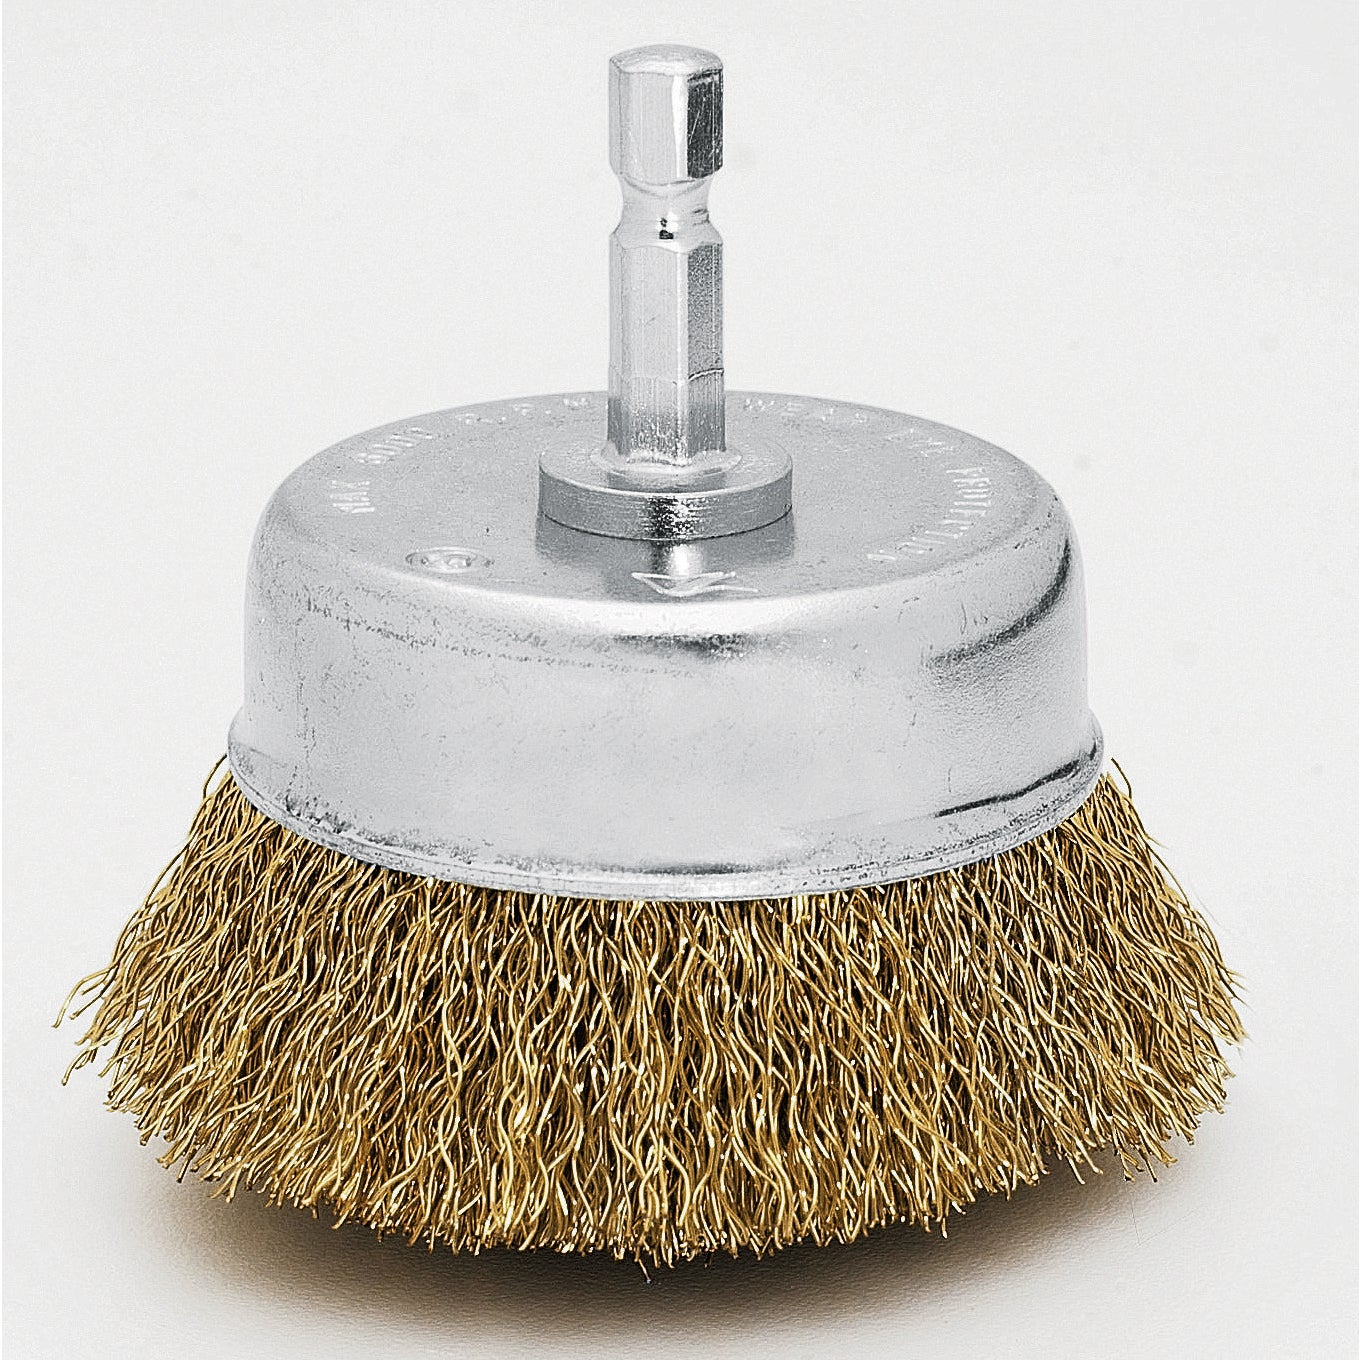 Vermont American 16784 2.75-inch Fine Cup Wire Brush (Pow...